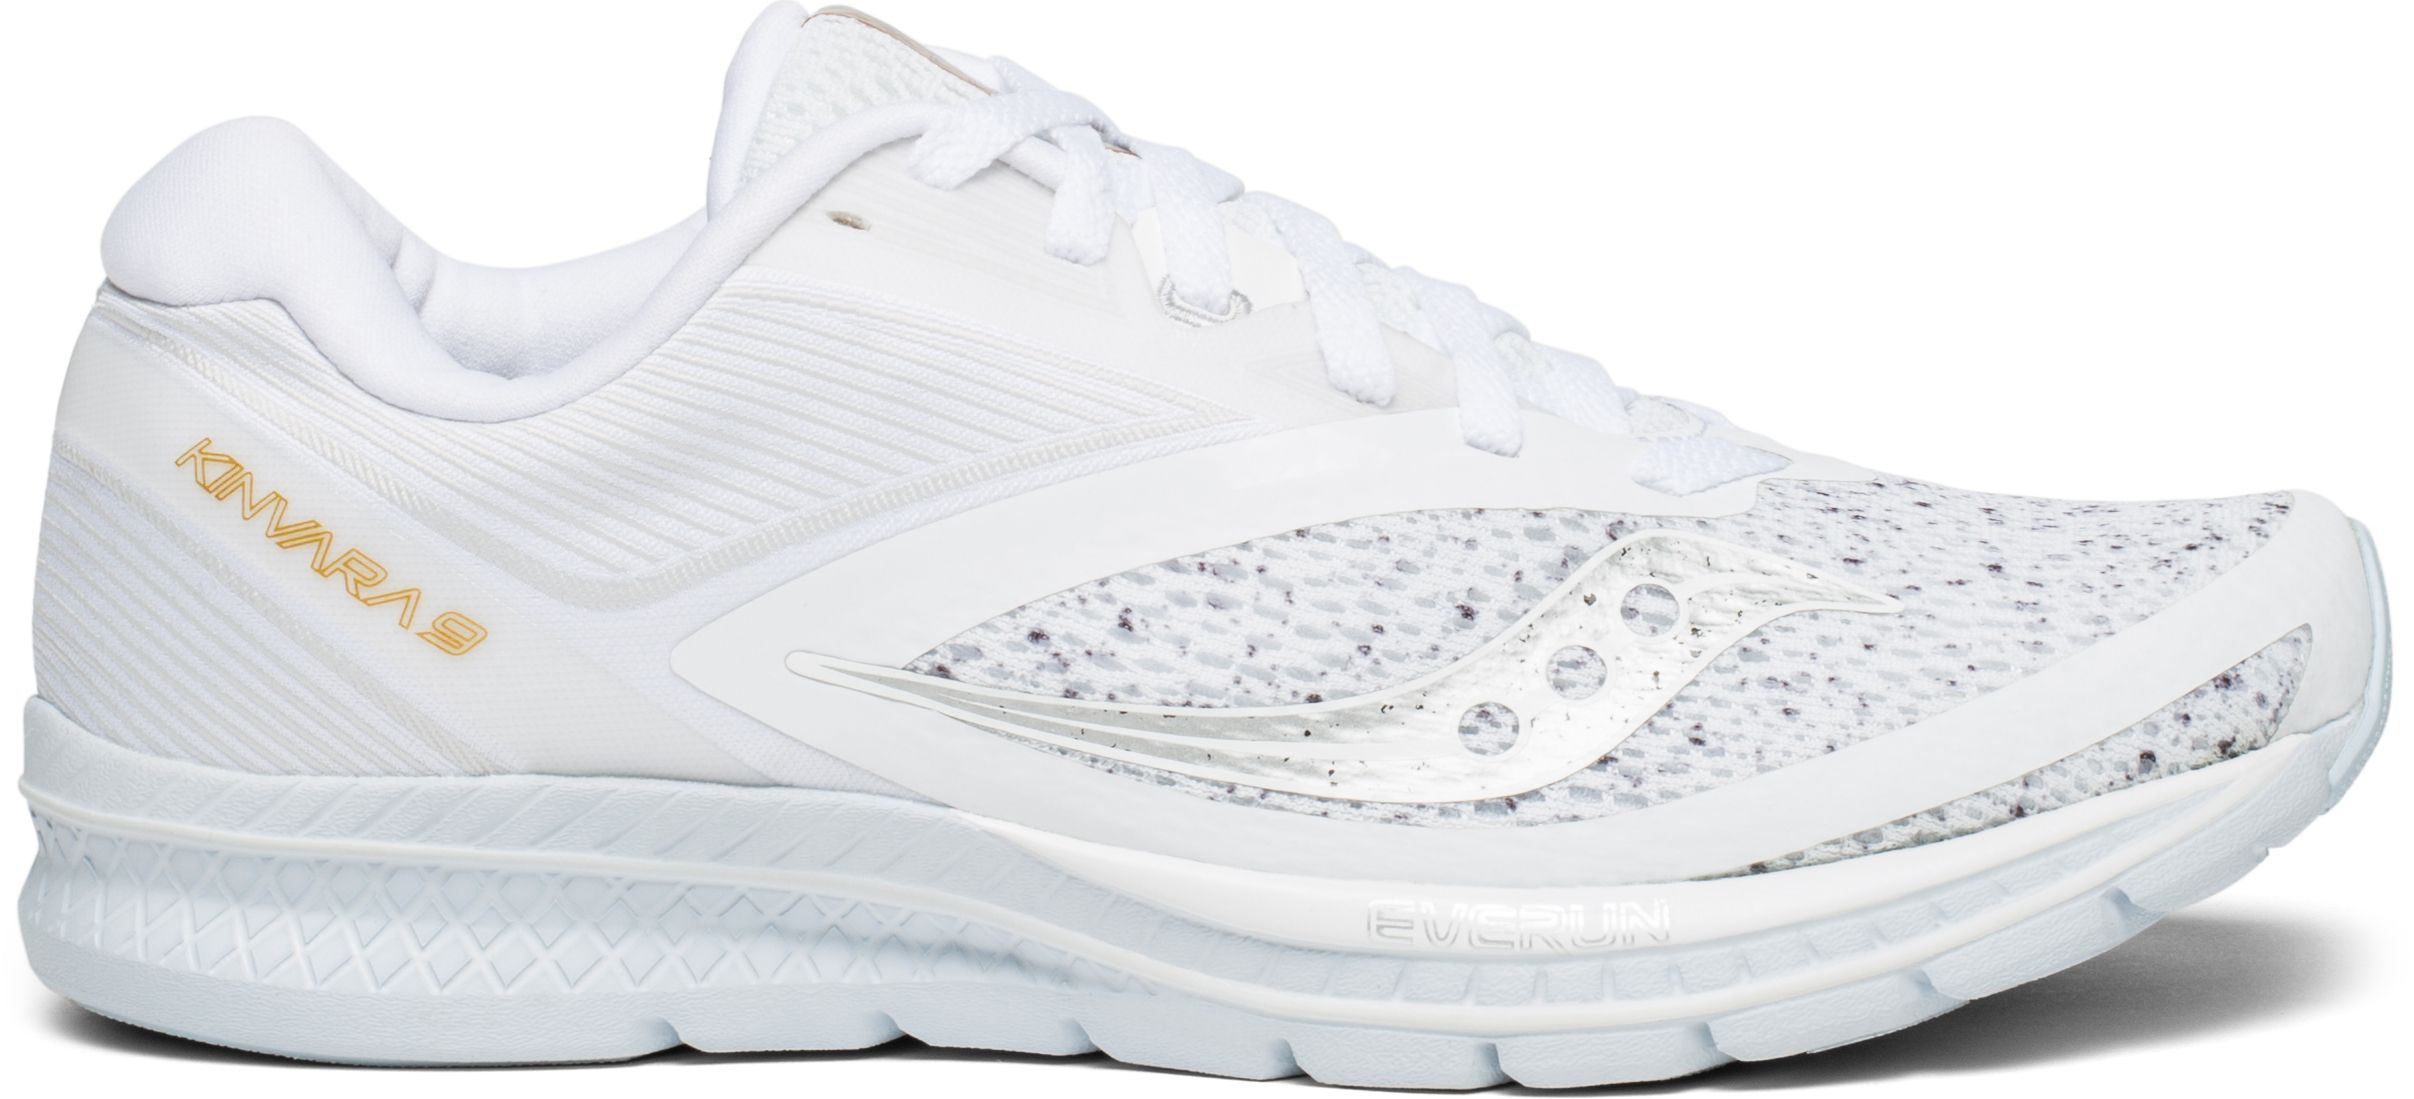 all white womens running shoes